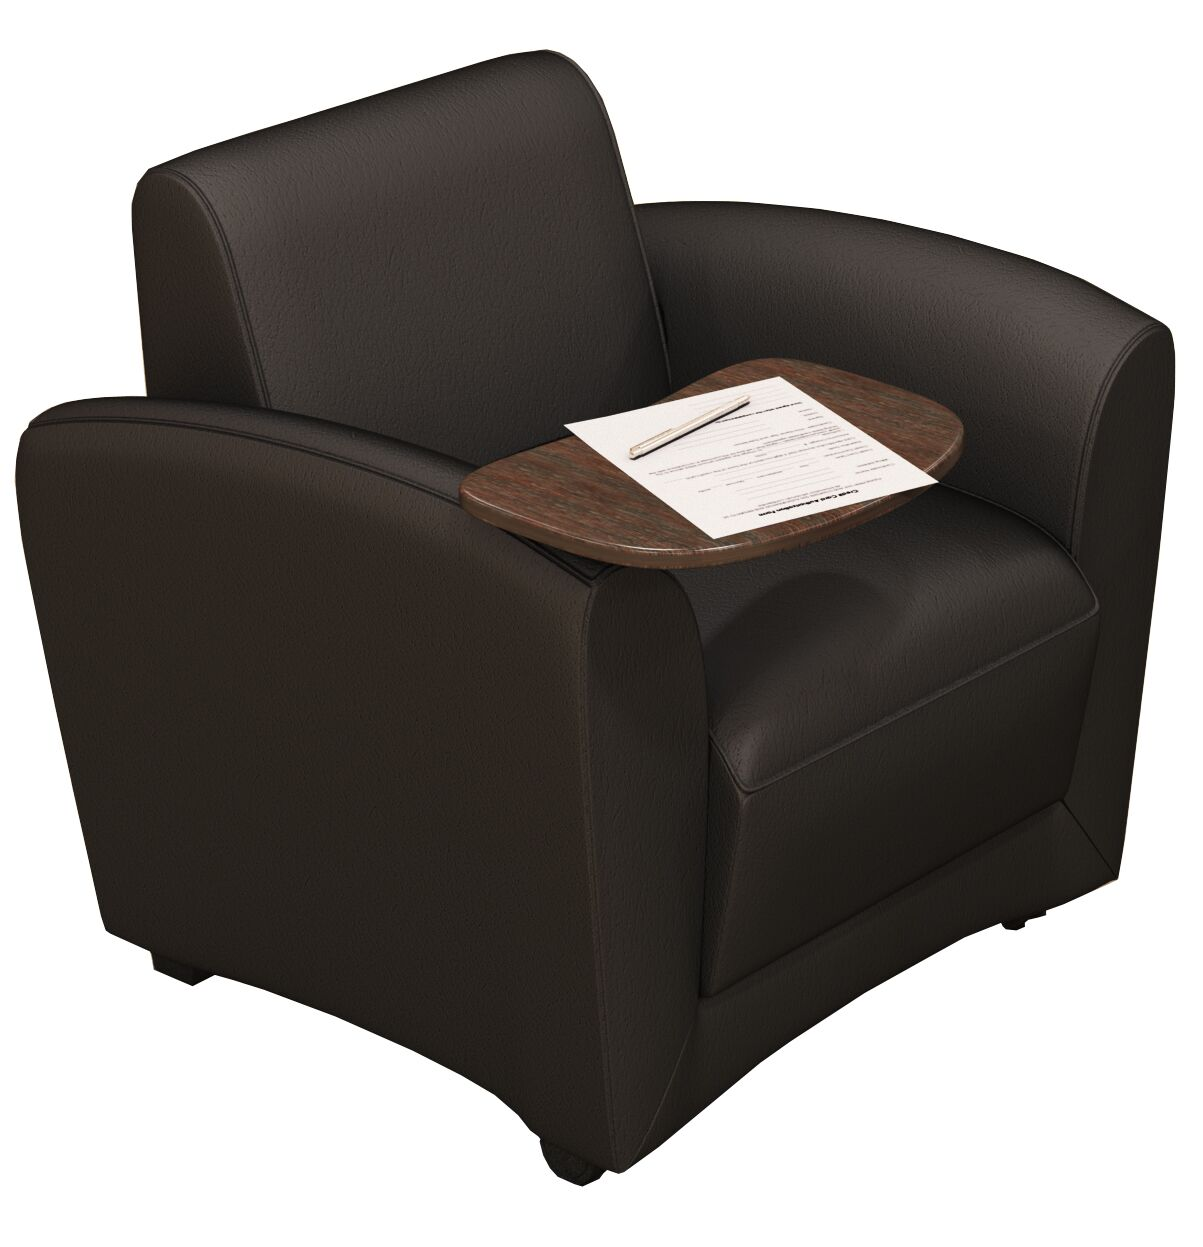 Leather Lounge Series Santa Cruz Mobile Leather Lounge Chair with Tablet Color: Black